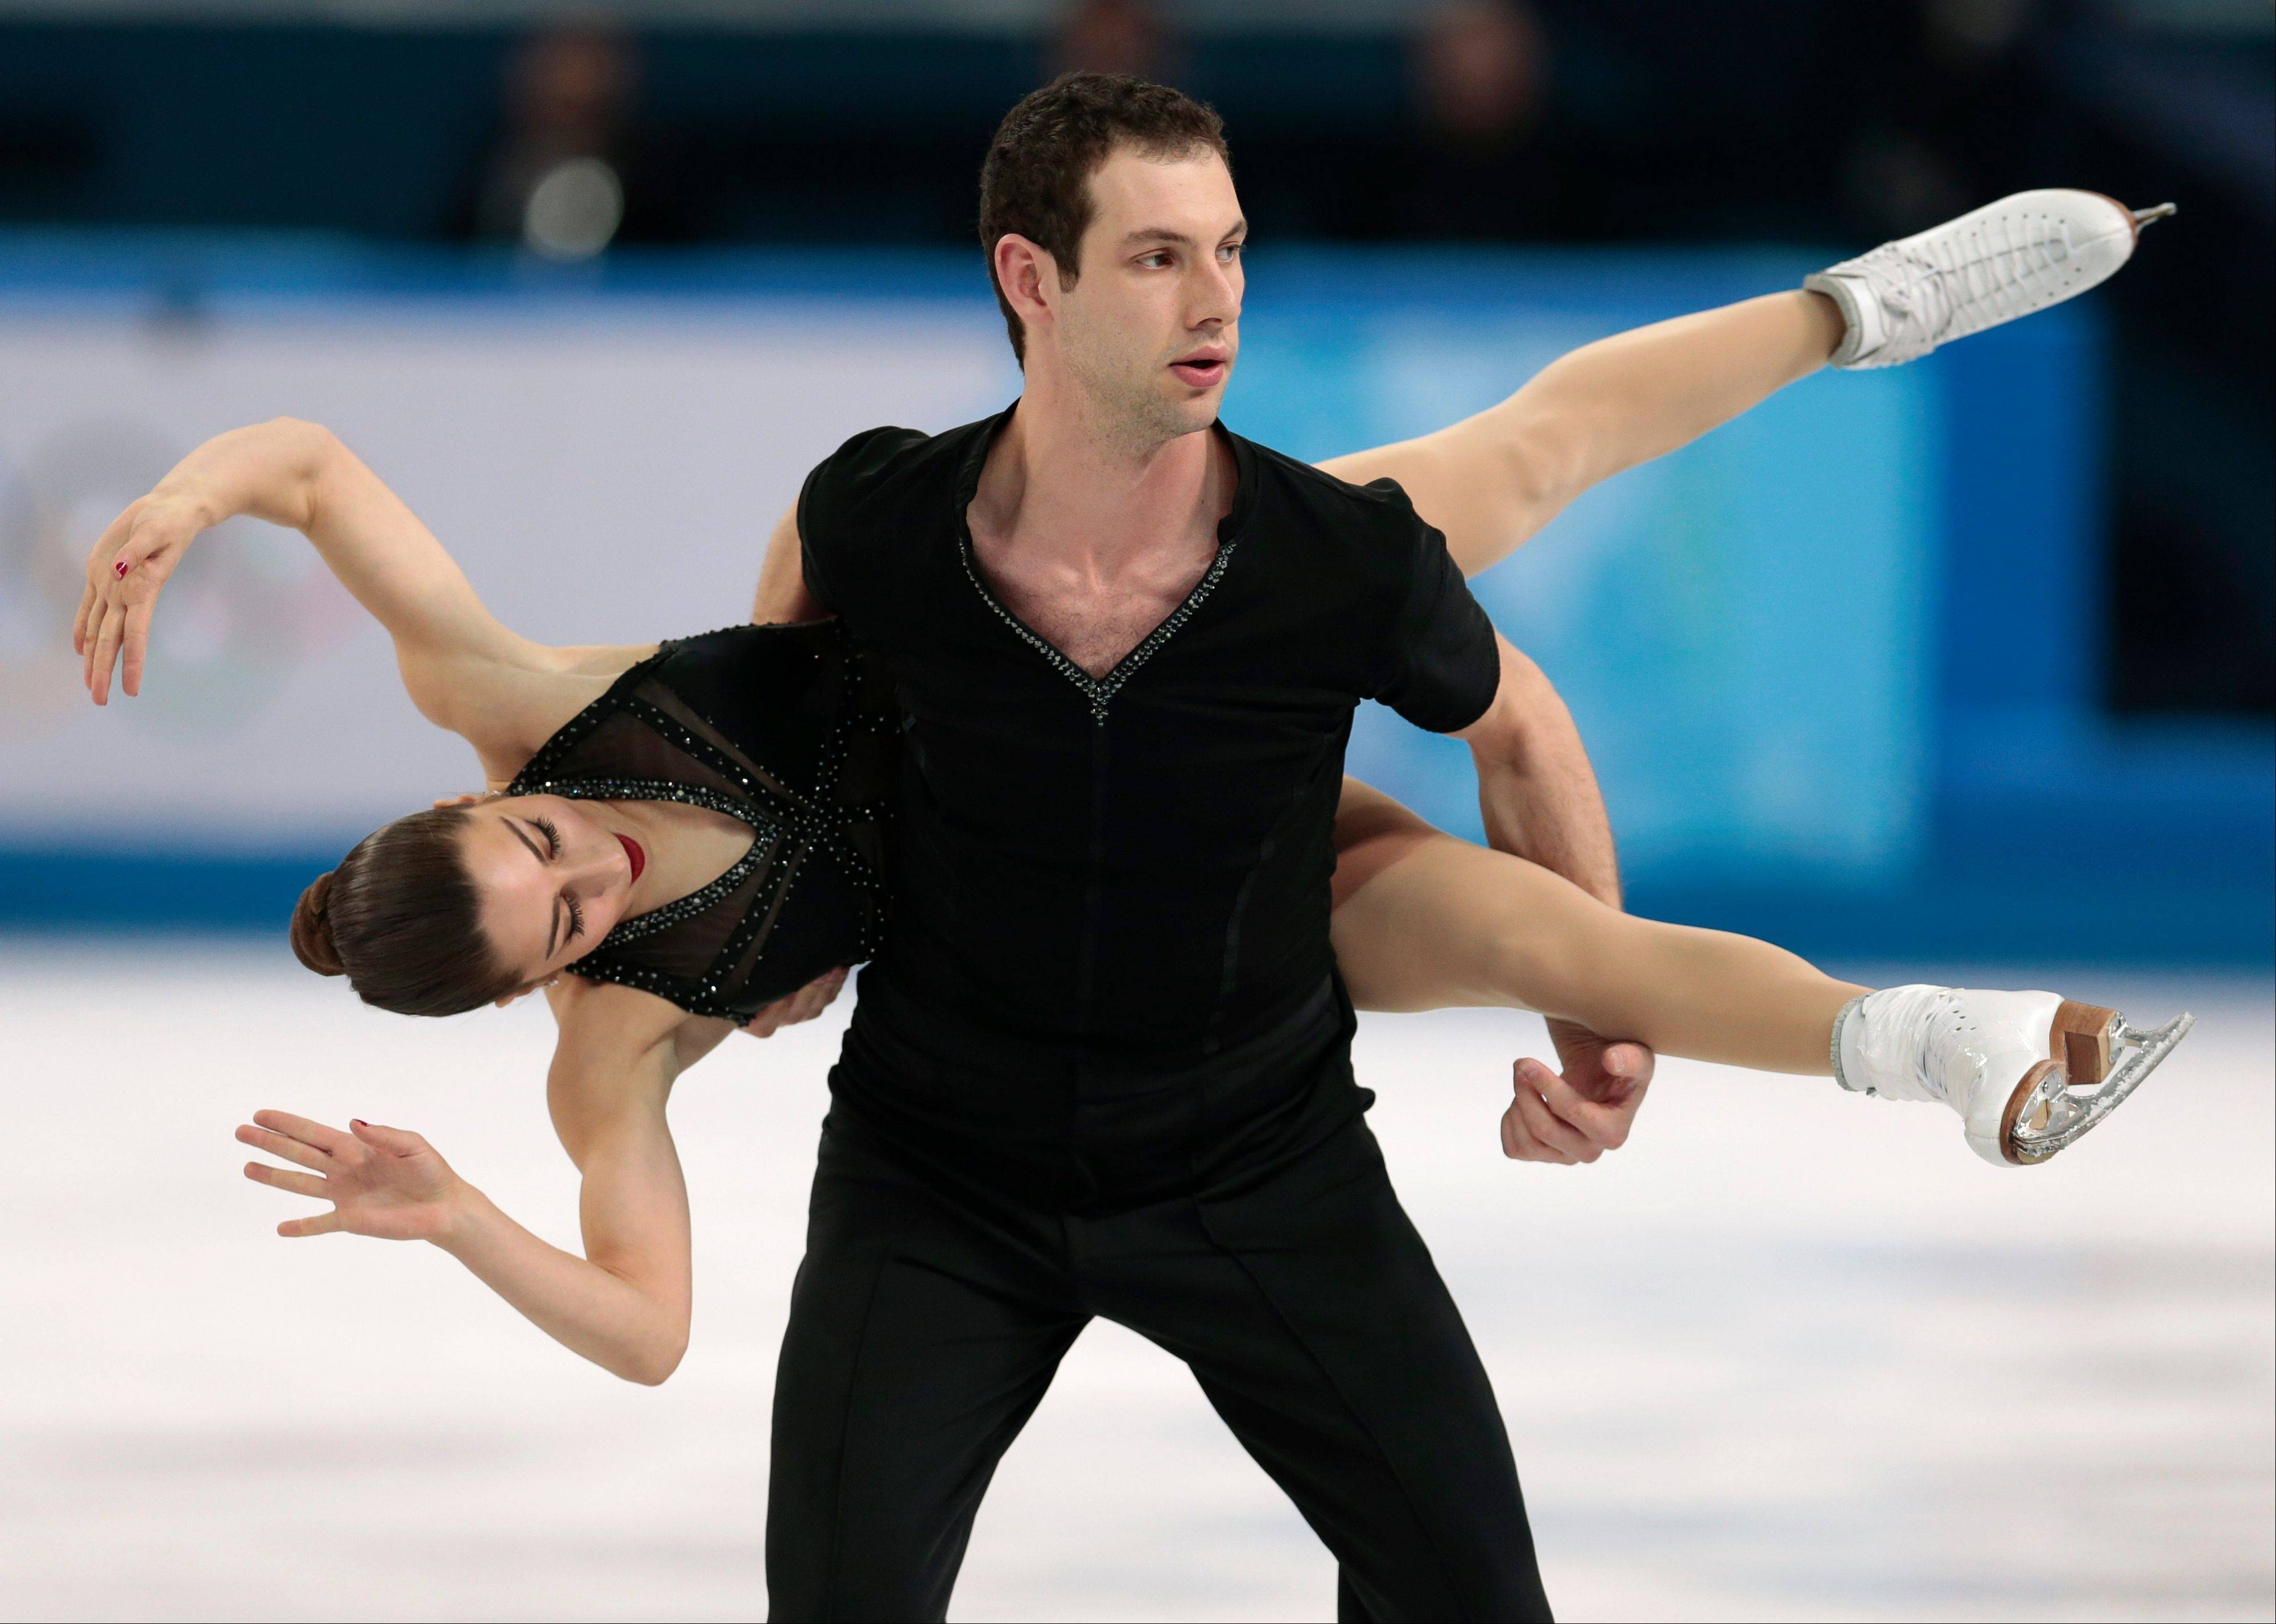 Marissa Castelli and Simon Shnapir of The United States compete in the team pairs short program igure skating competition at the Iceberg Skating Palace during the 2014 Winter Olympics.